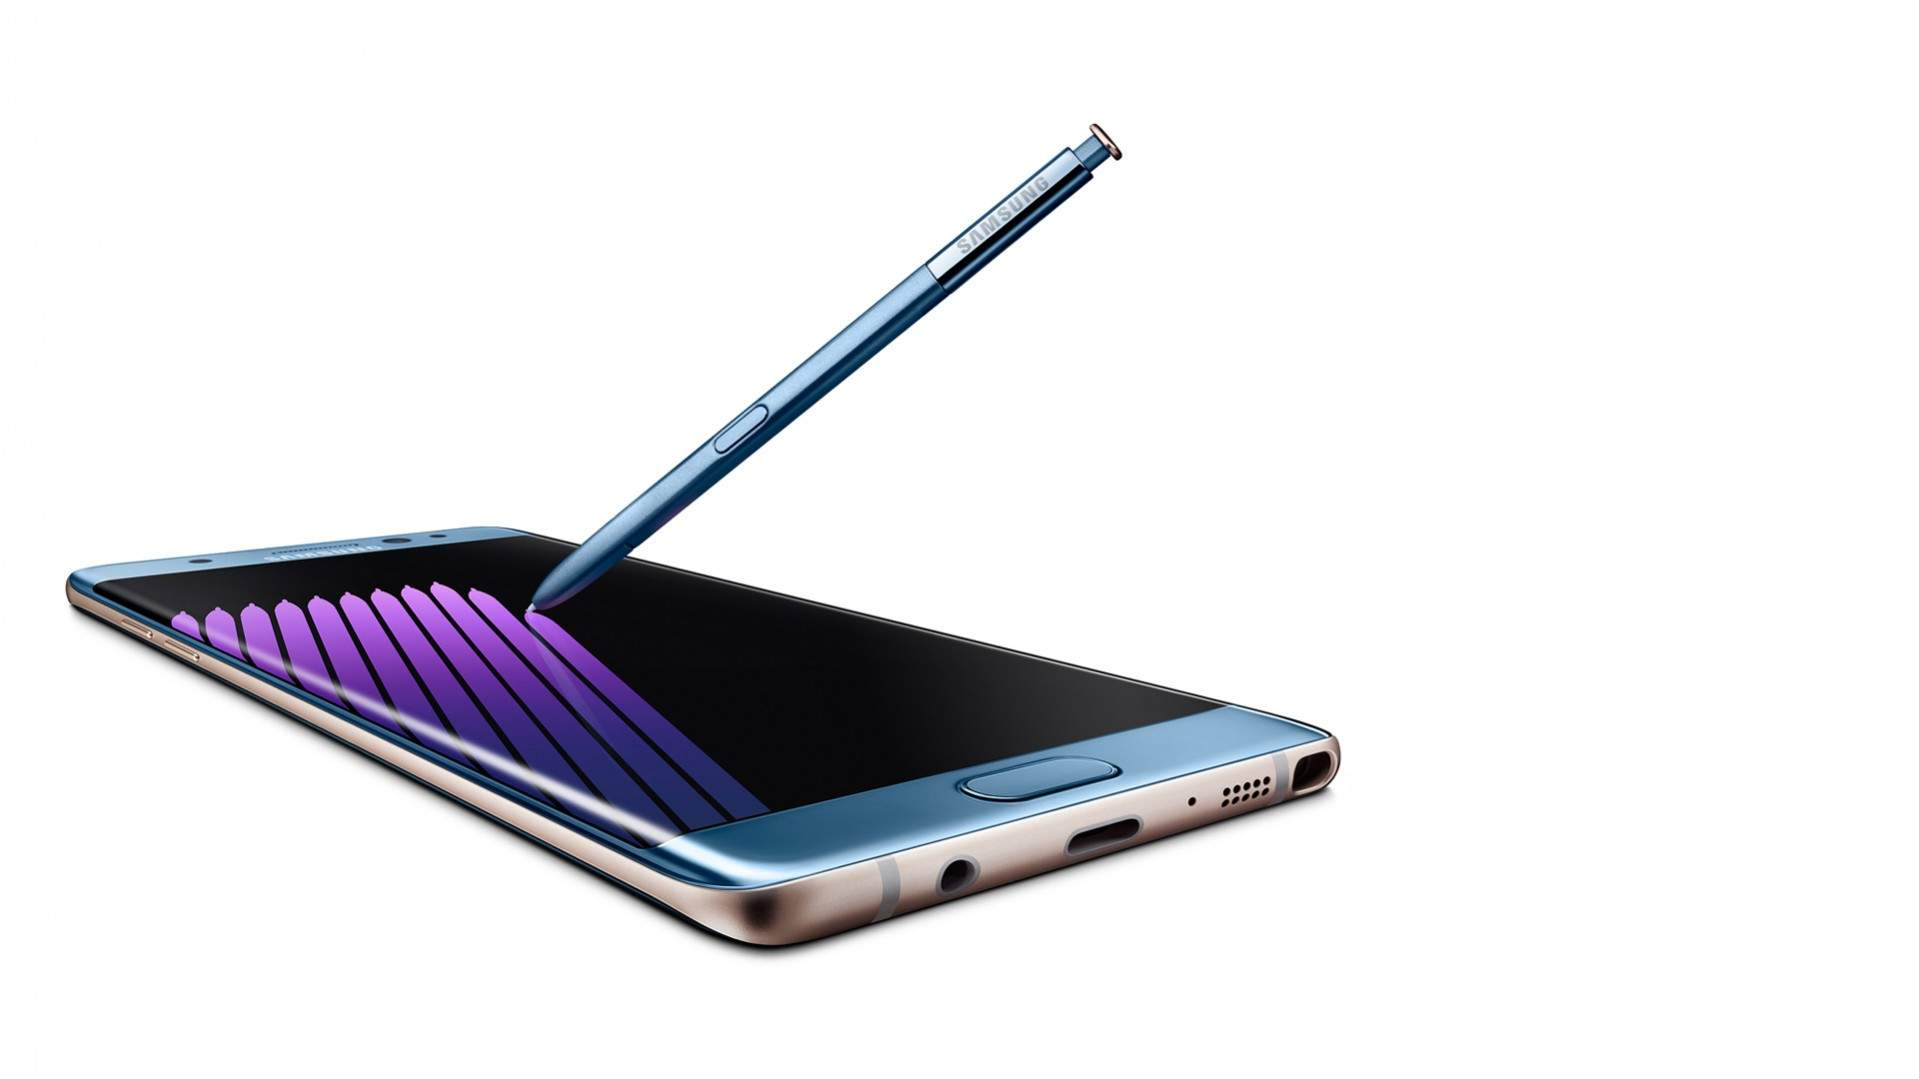 Samsung Galaxy Note 5 vs Samsung Galaxy Note 7